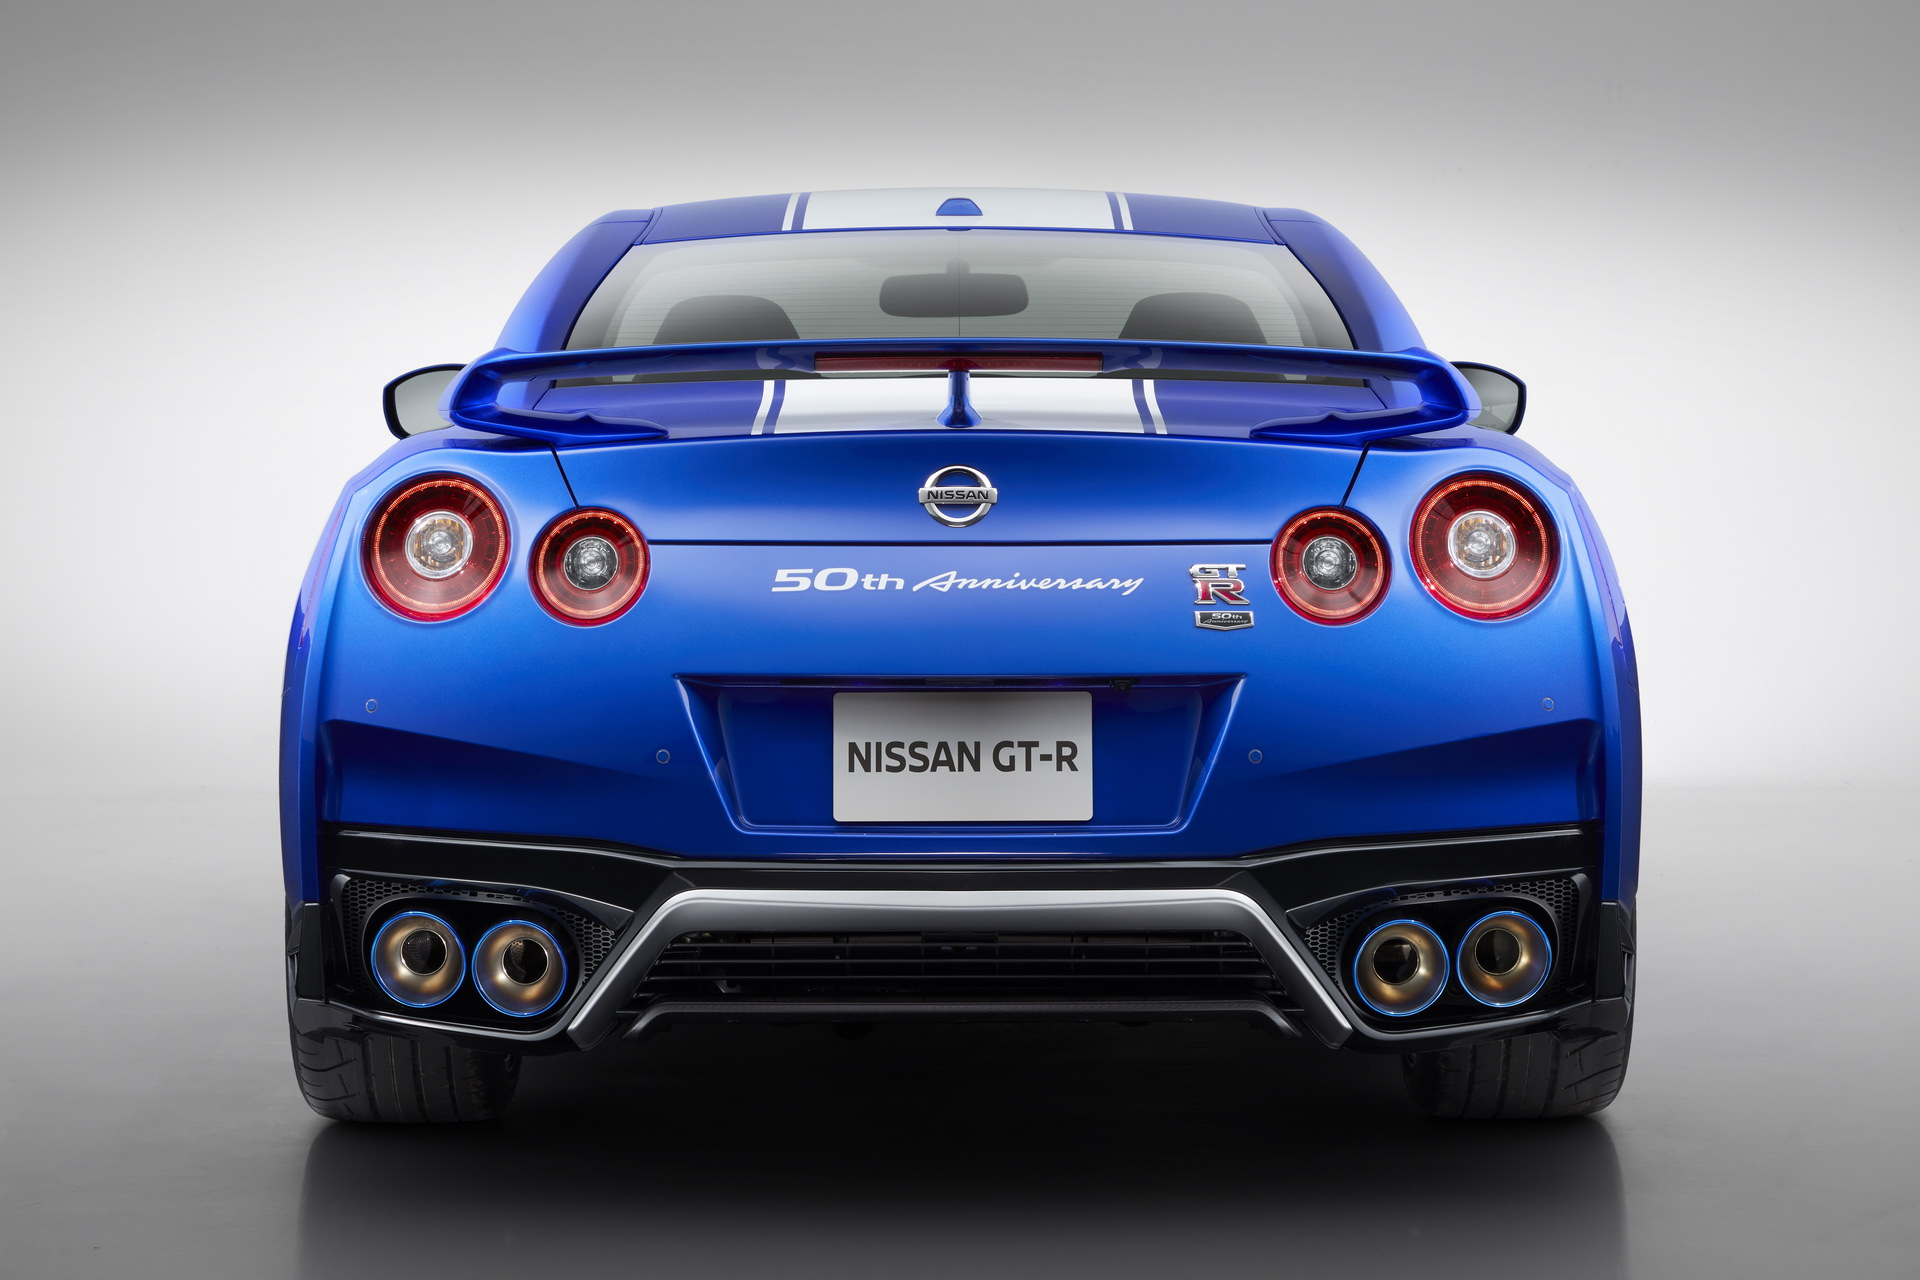 Godzilla Gets Gilded: This Is the Nissan GT-R 50th Anniversary Edition